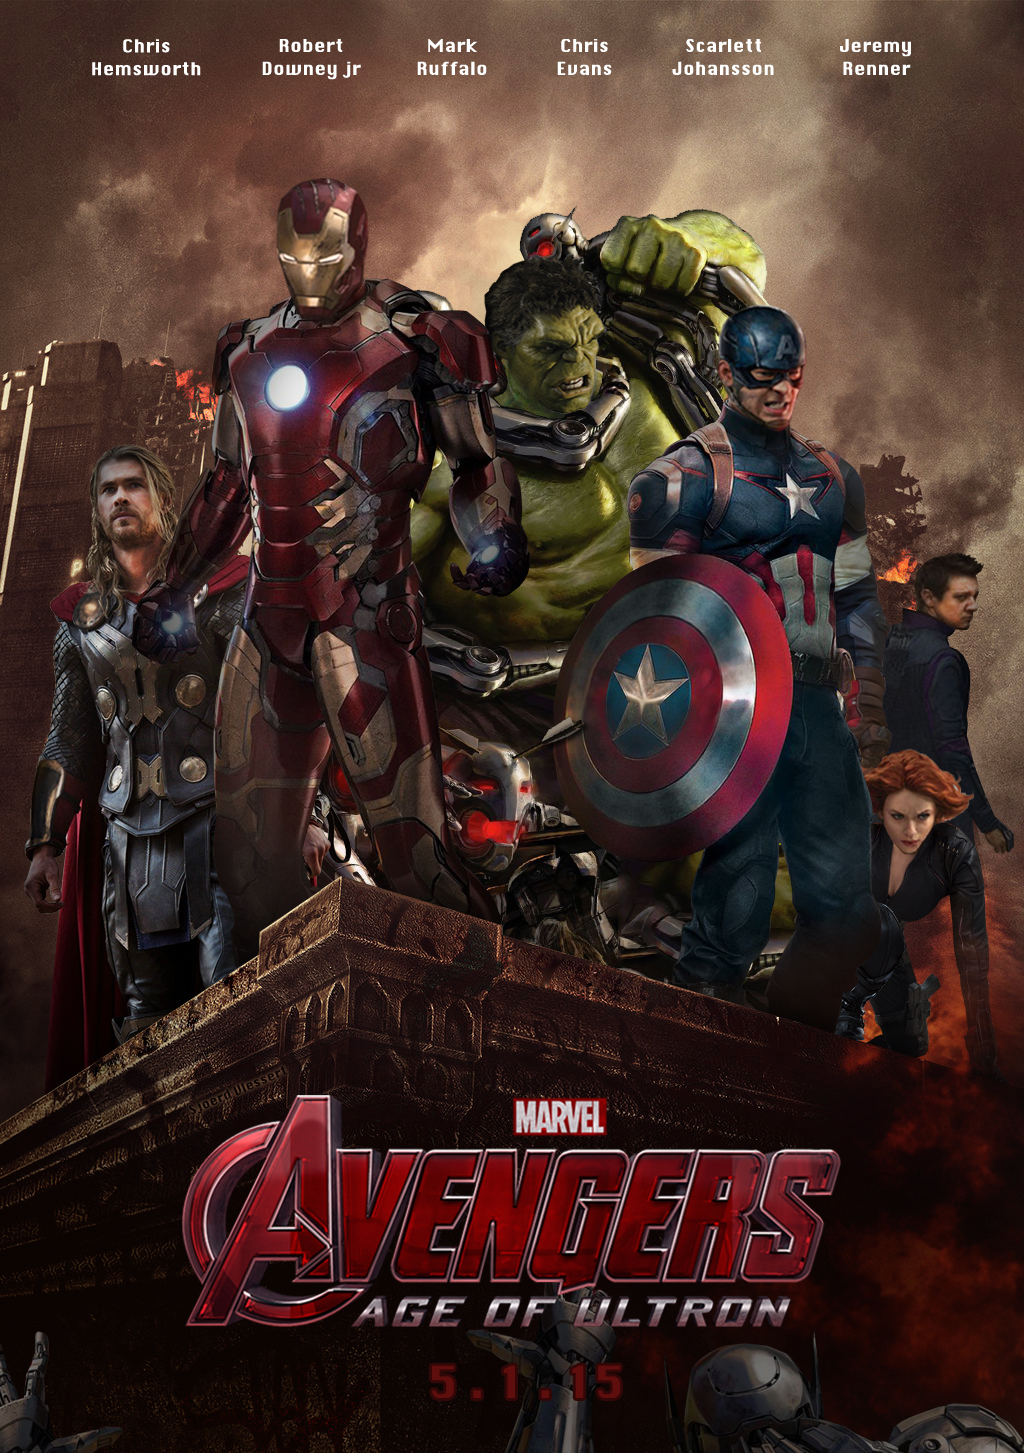 Avengers-age-of-Ultron-poster-the-avengers-age-of-ultron-37434941-1024-1453.jpg